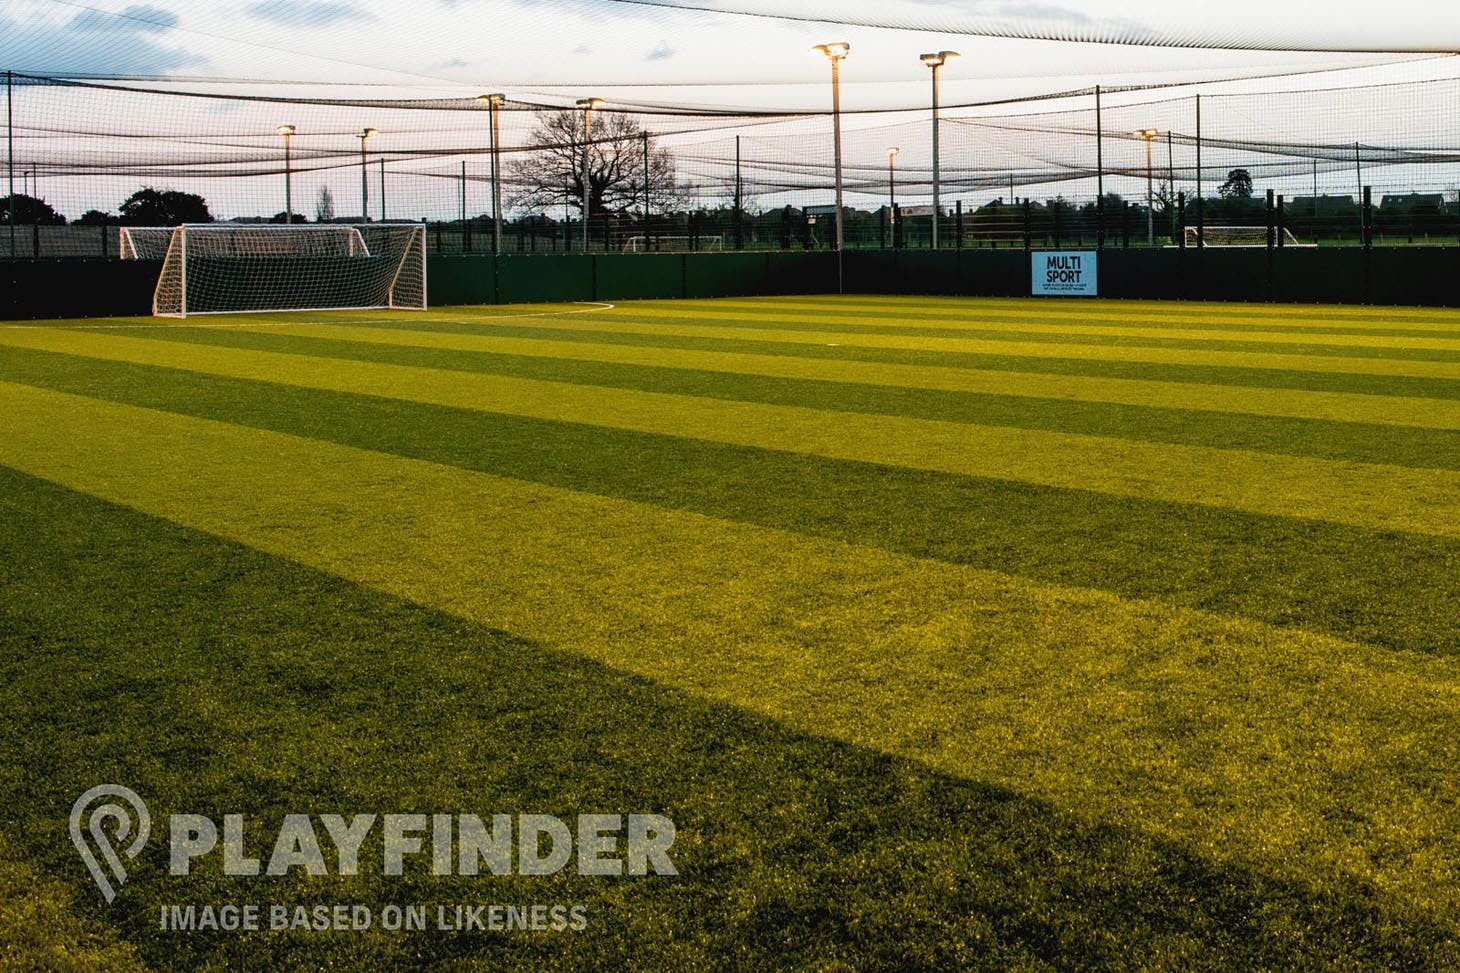 Goals Sheffield 7 a side | 3G Astroturf football pitch